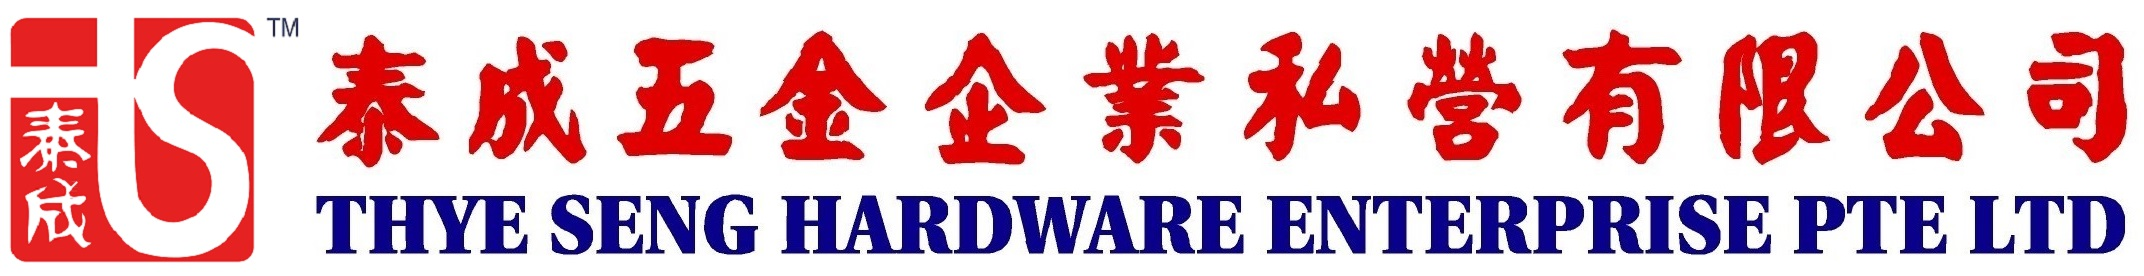 Thye Seng Hardware Enterprise Pte Ltd